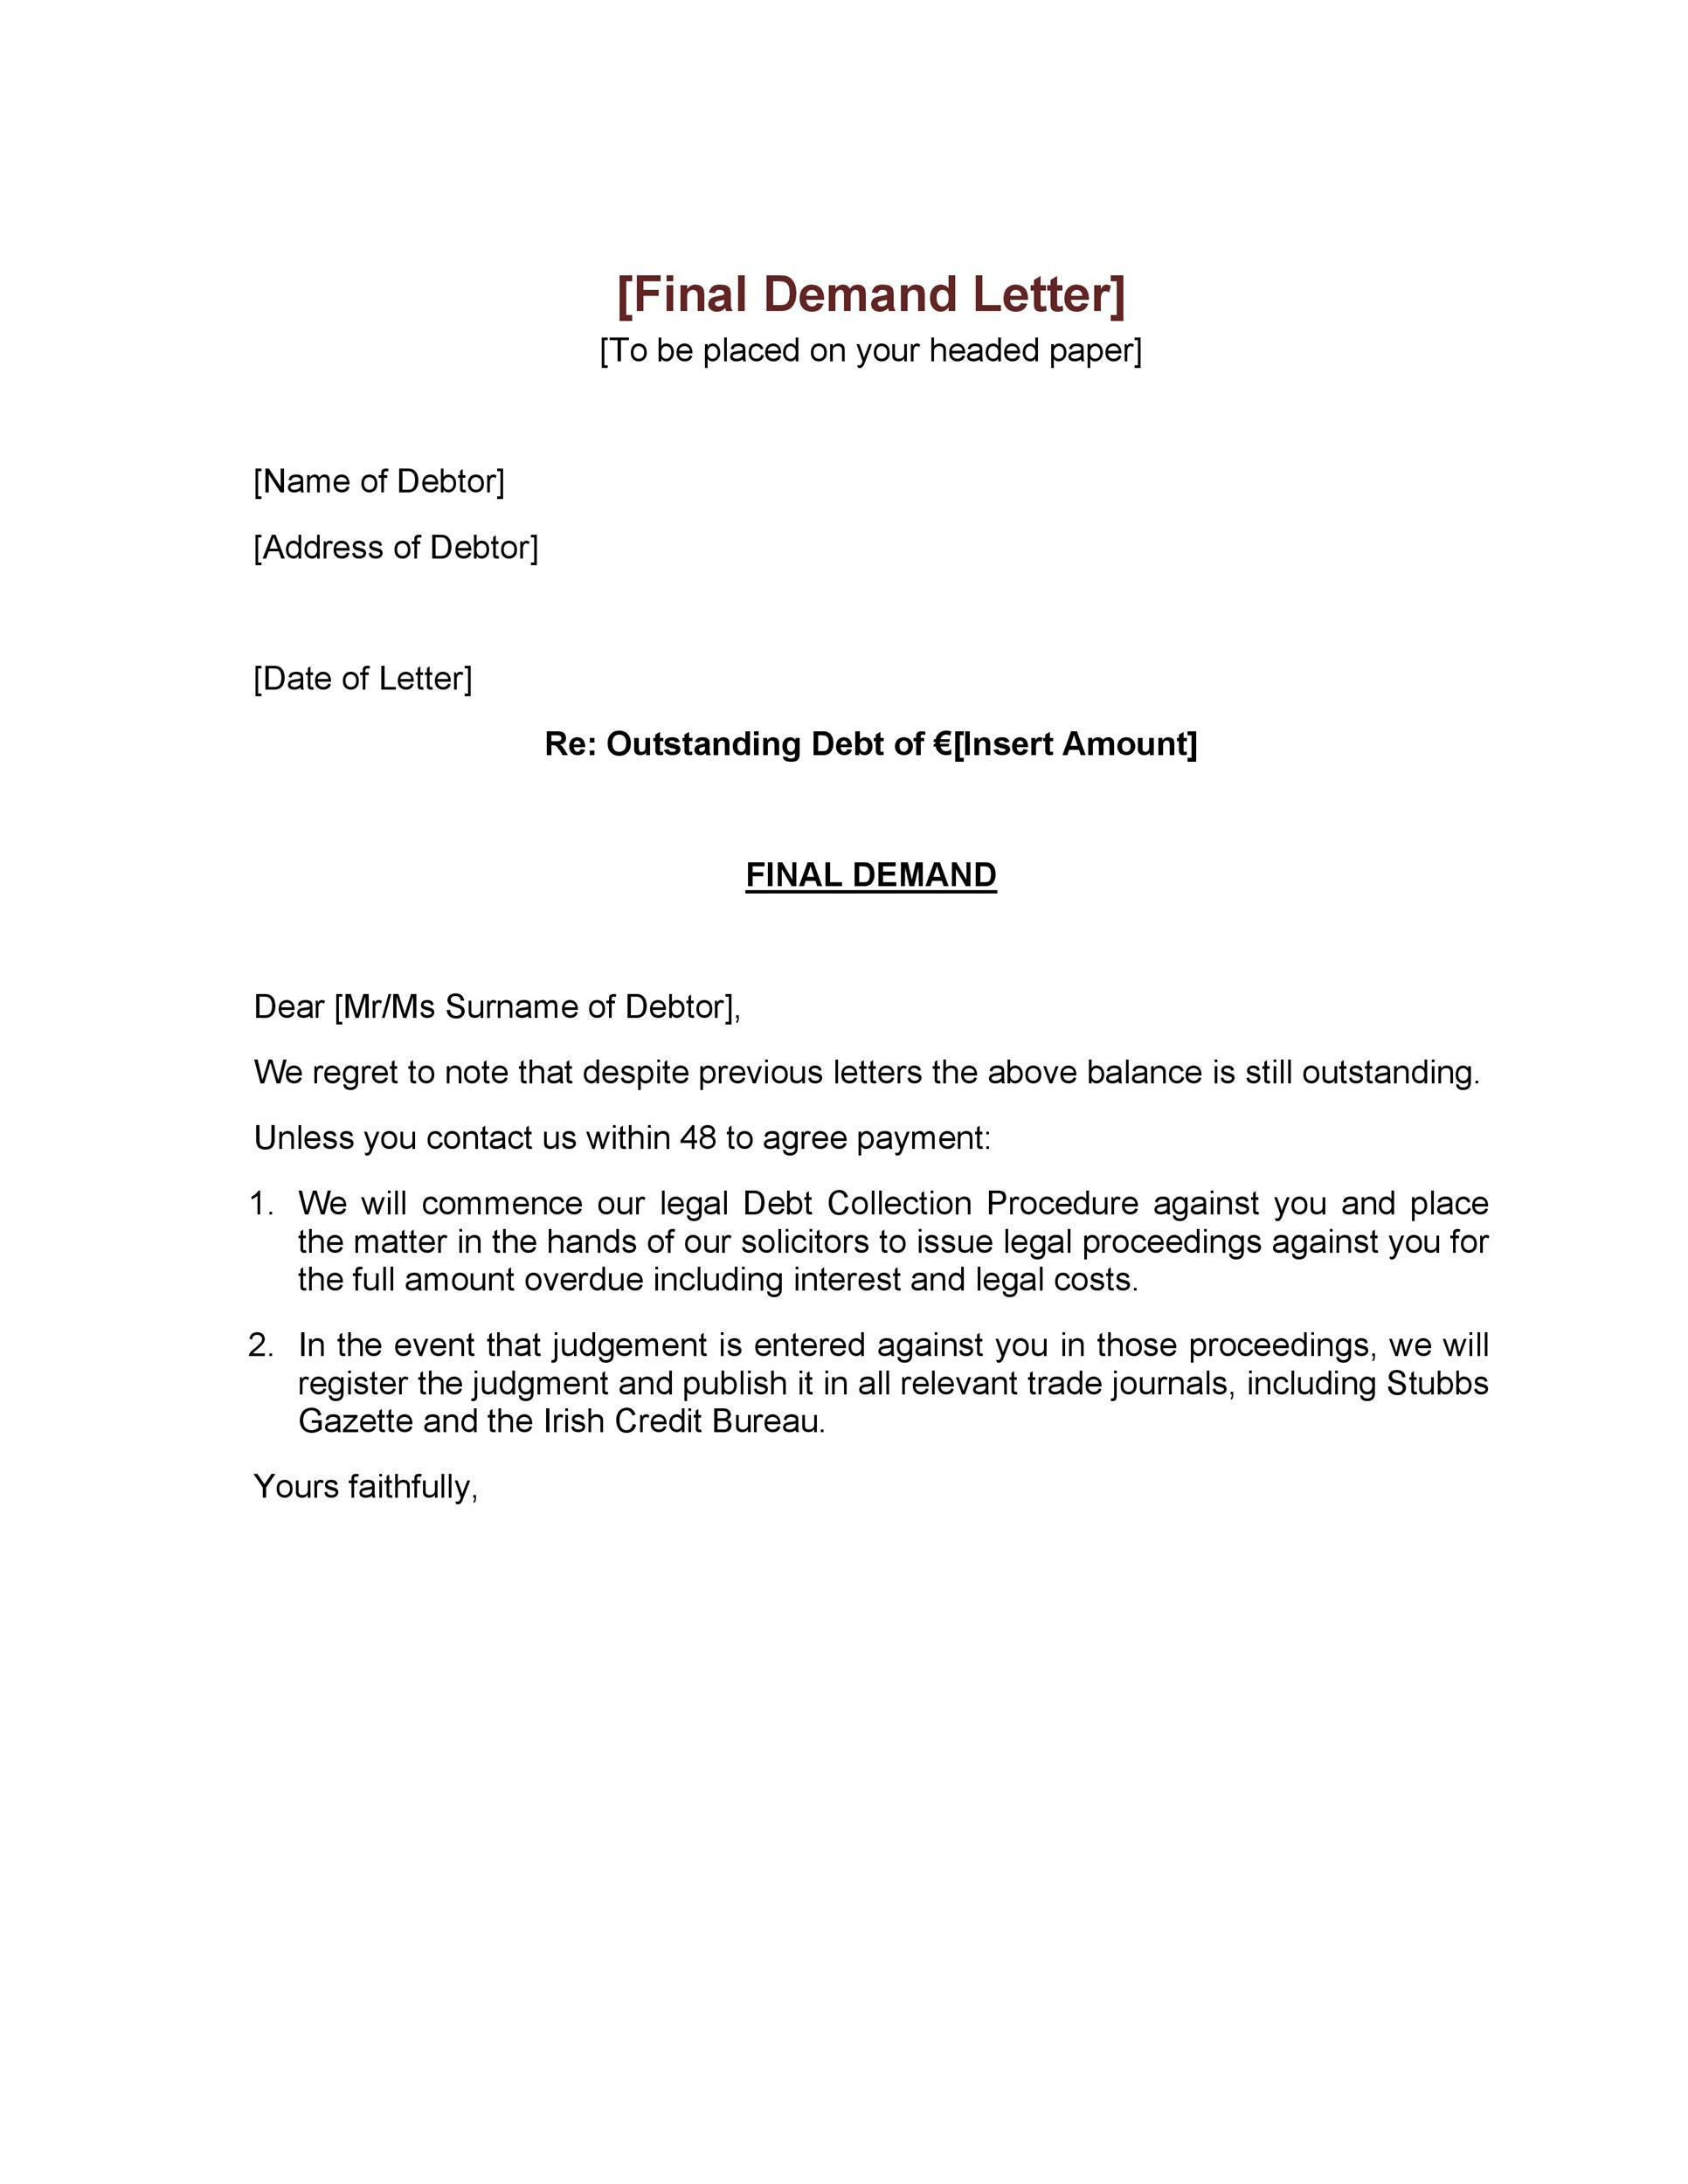 40 Best Demand Letter Templates (Free Samples)